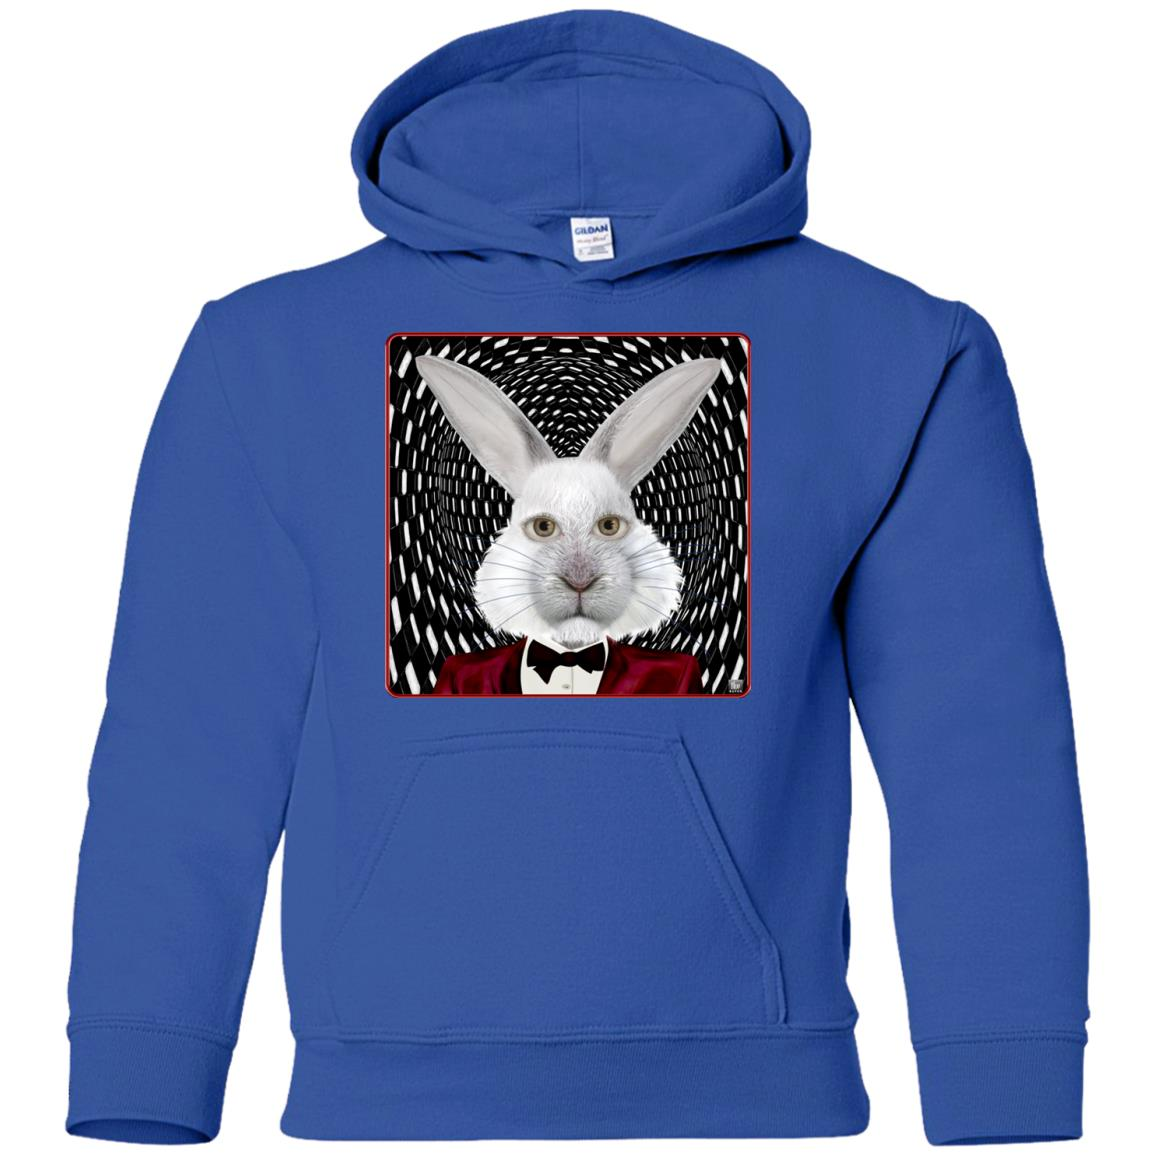 the white rabbit - Youth Hoodie